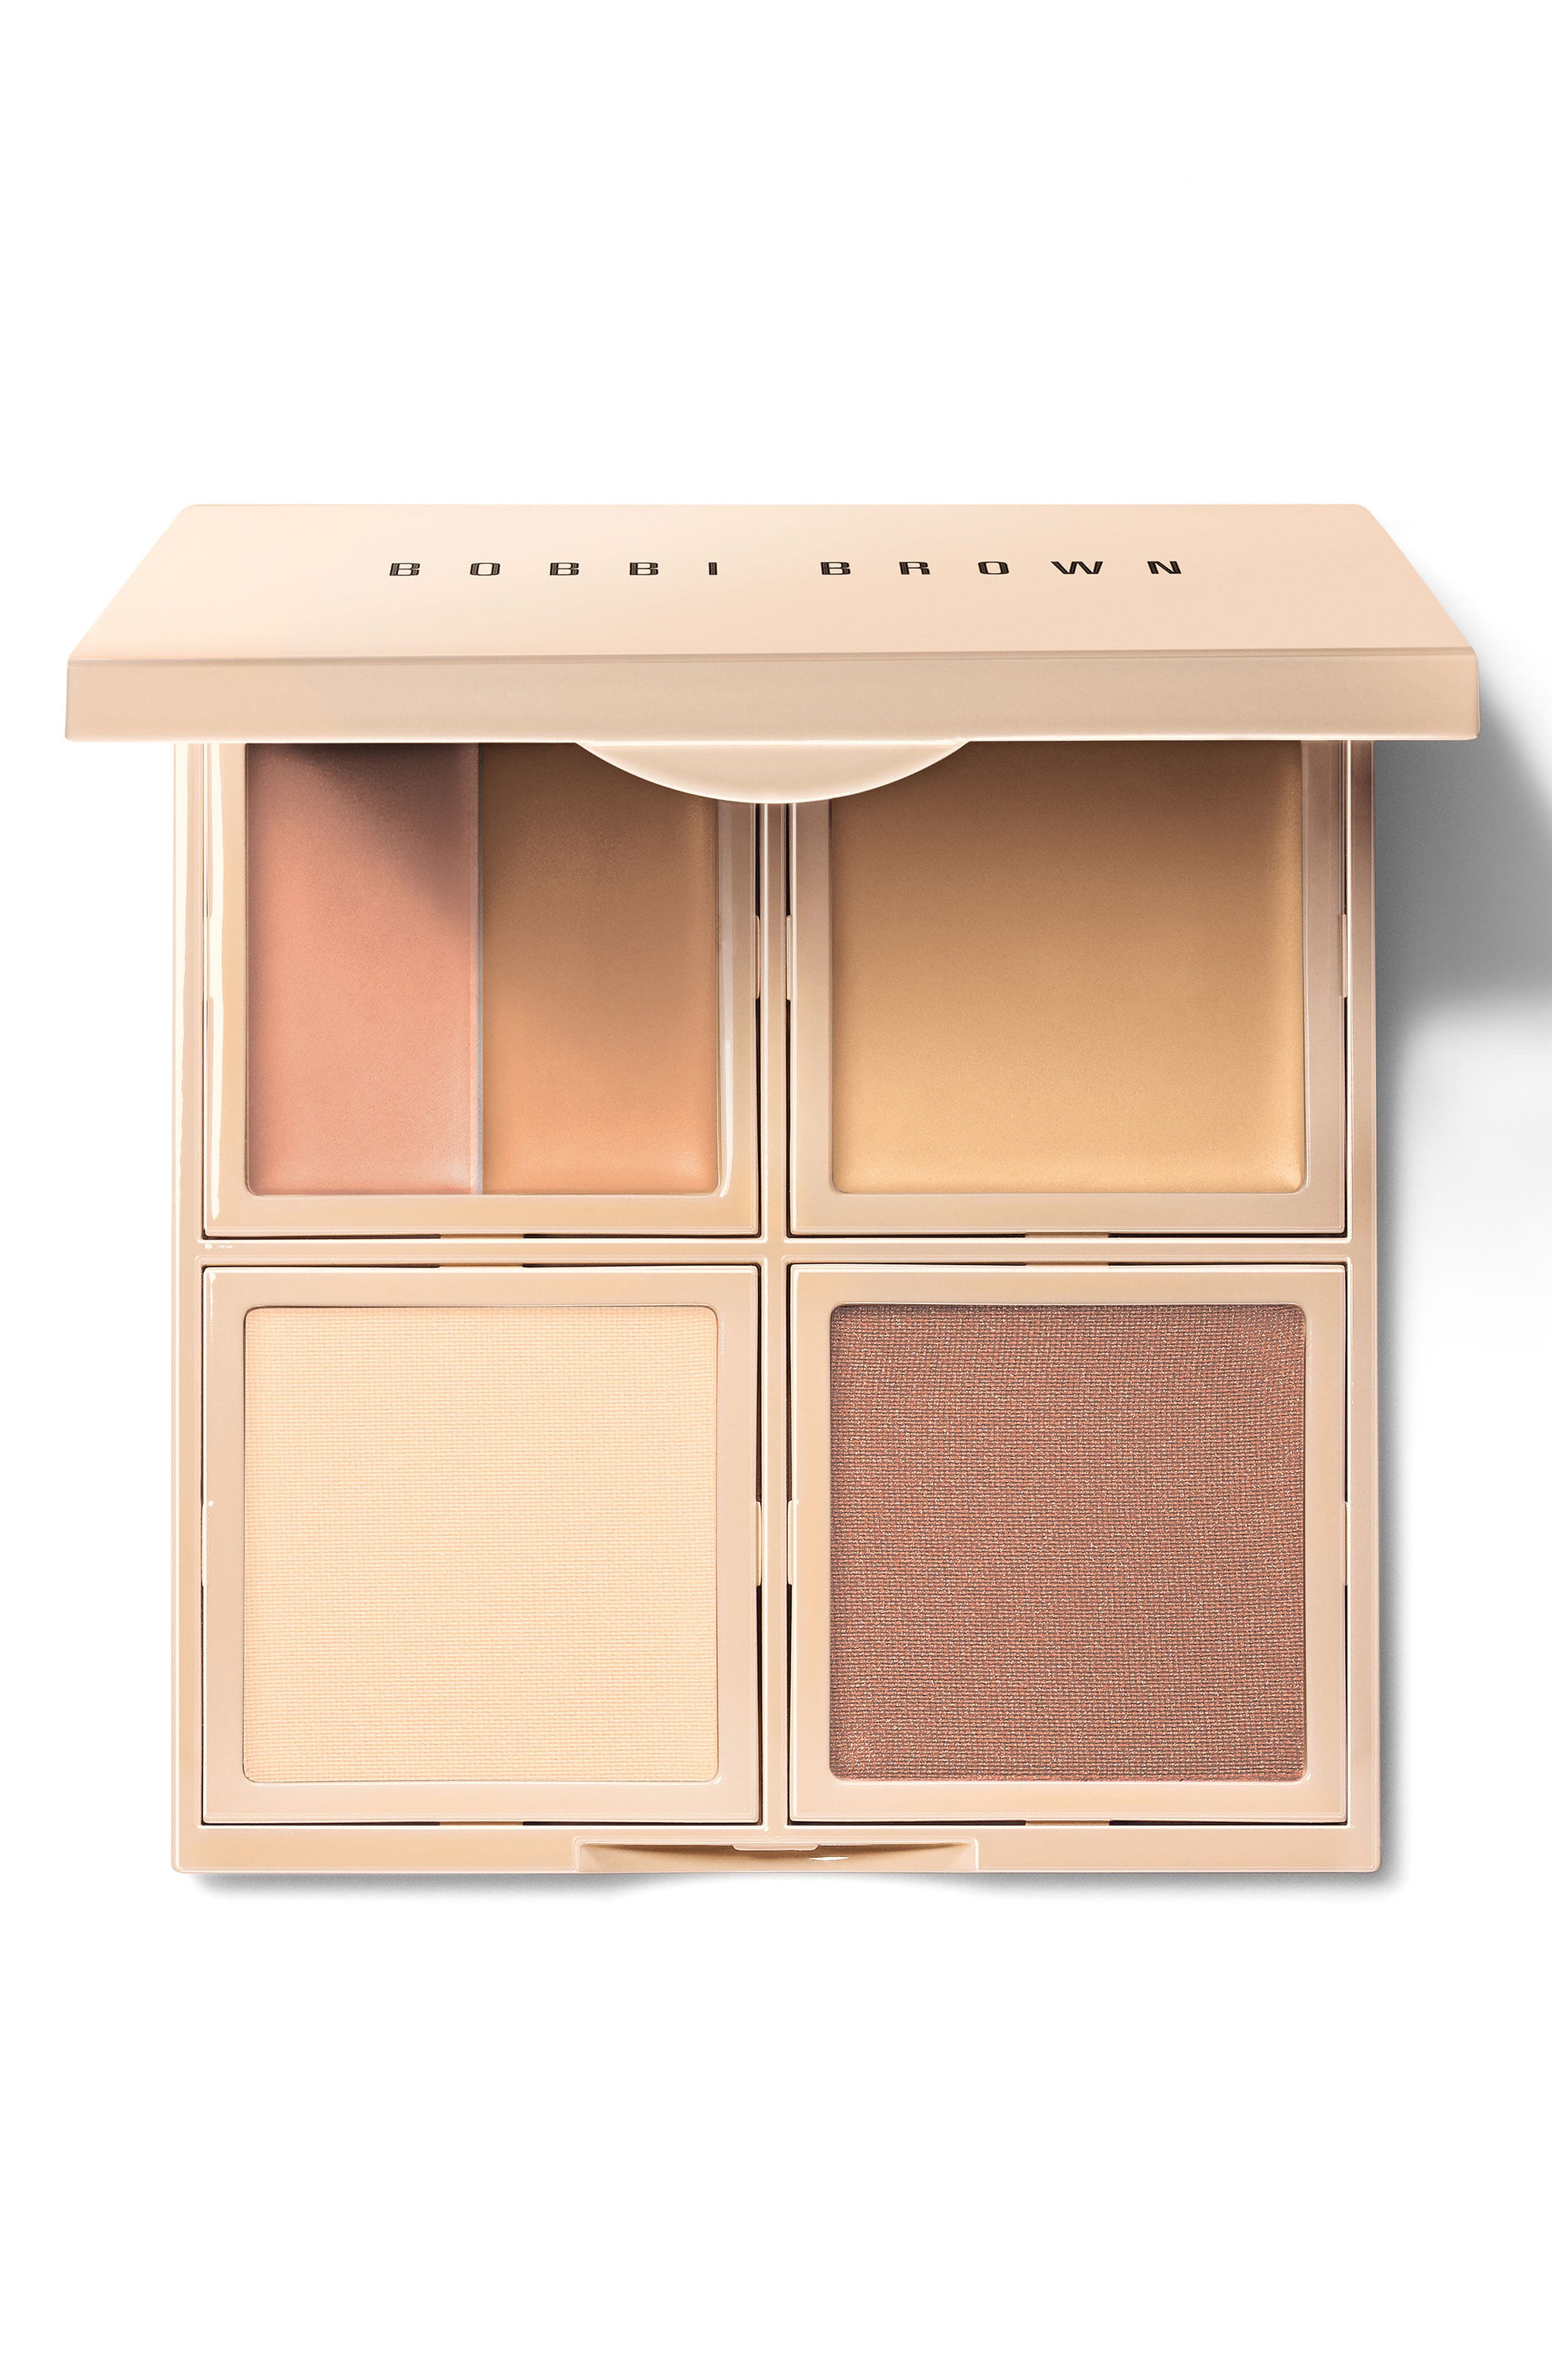 Bobbi Brown 5-in-1 Essential Face Palette (Nordstrom Exclusive) ($135 Value)